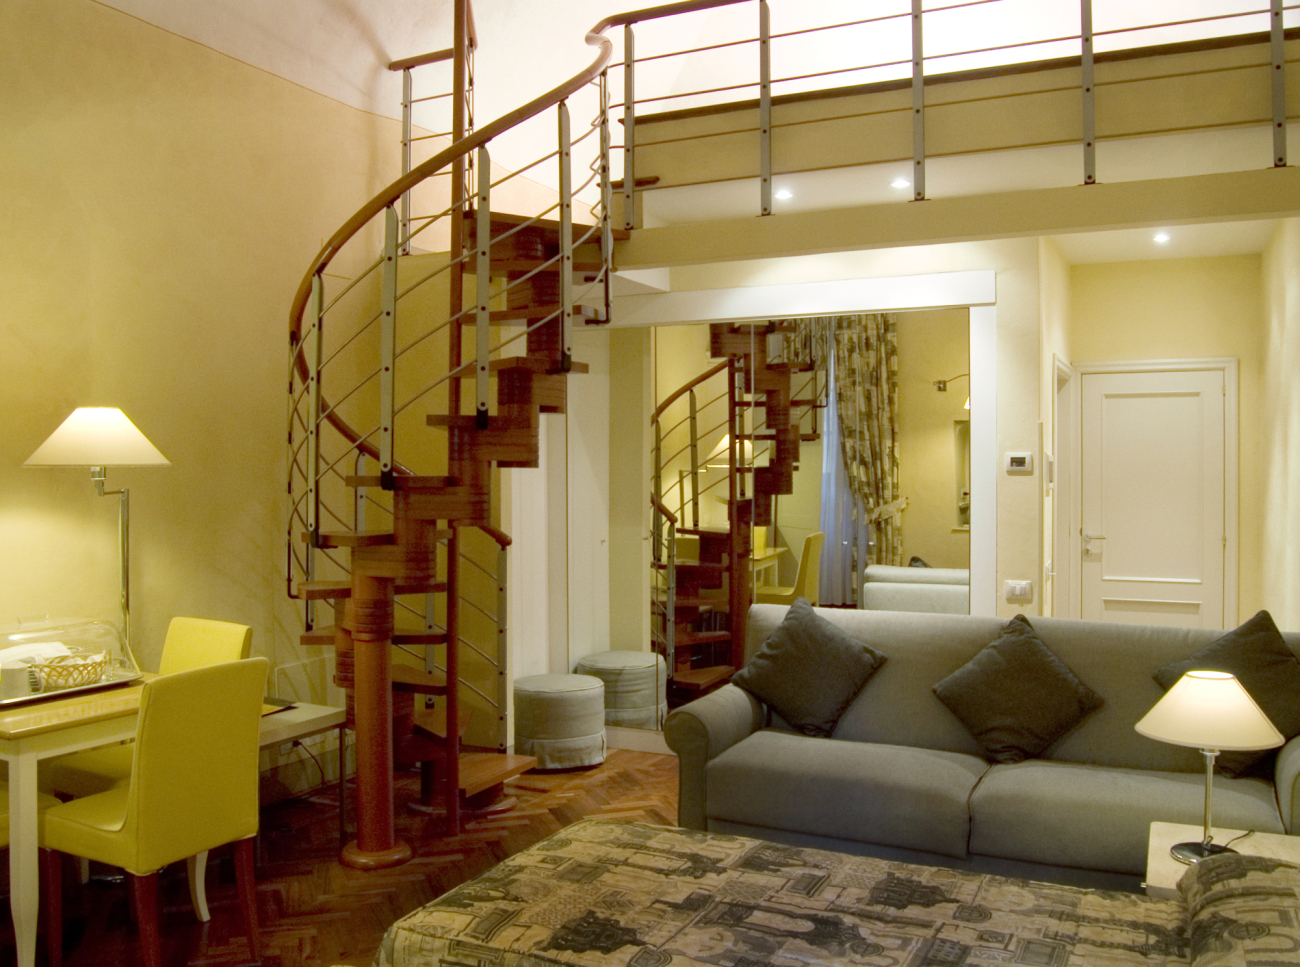 Piccolo apart residence: Florence, Toscany